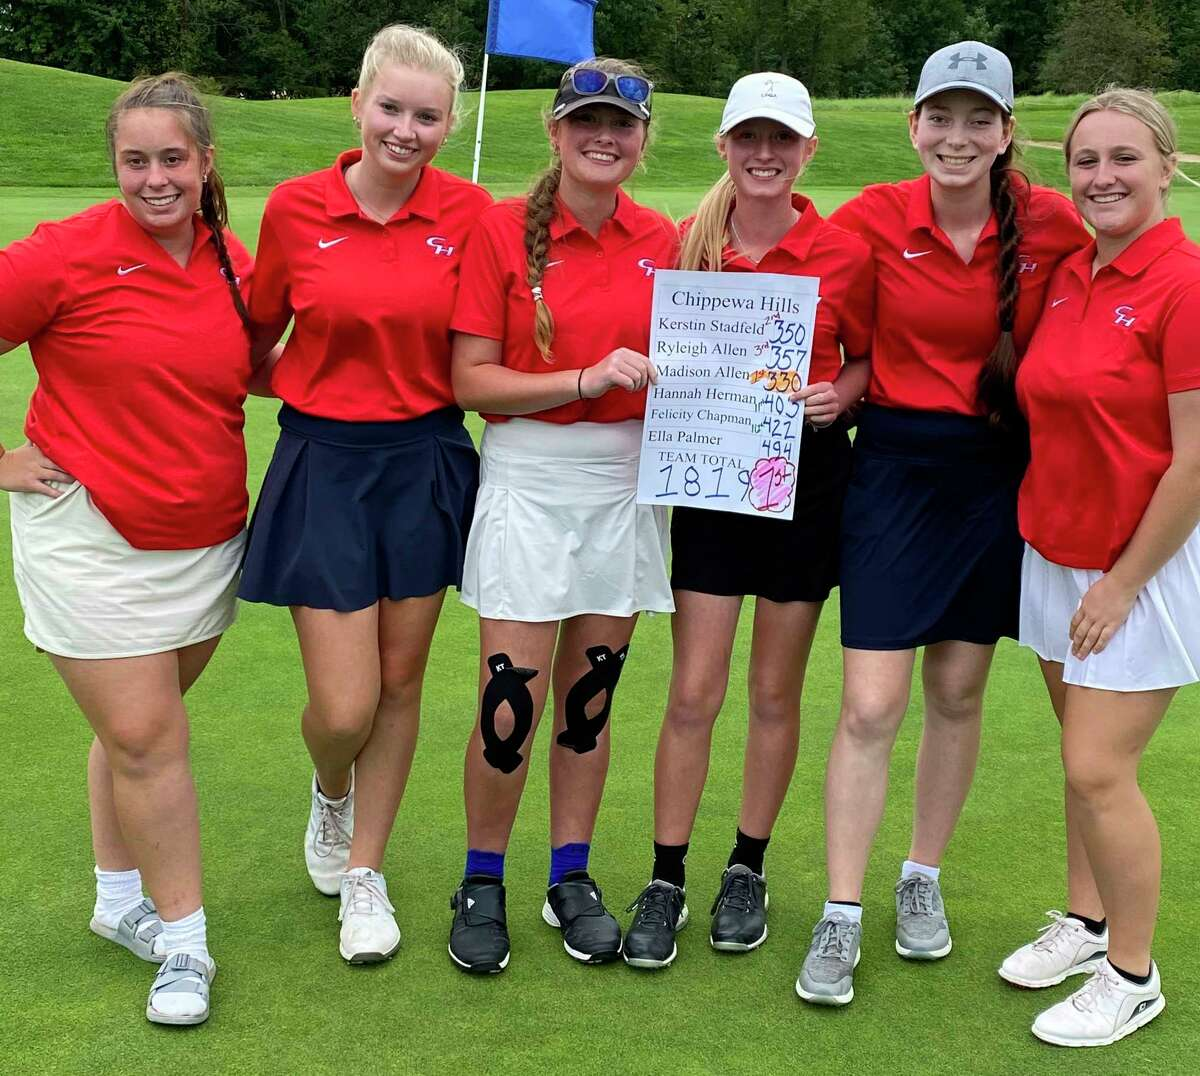 From left: Chippewa Hills golfers Hanna Herman, Kerstin Stadtfeld, Ryleigh Allen, Madison Allen, Felicity Chapman and Ella Palmer celebrate their league title on Tuesday. (Courtesy photo)